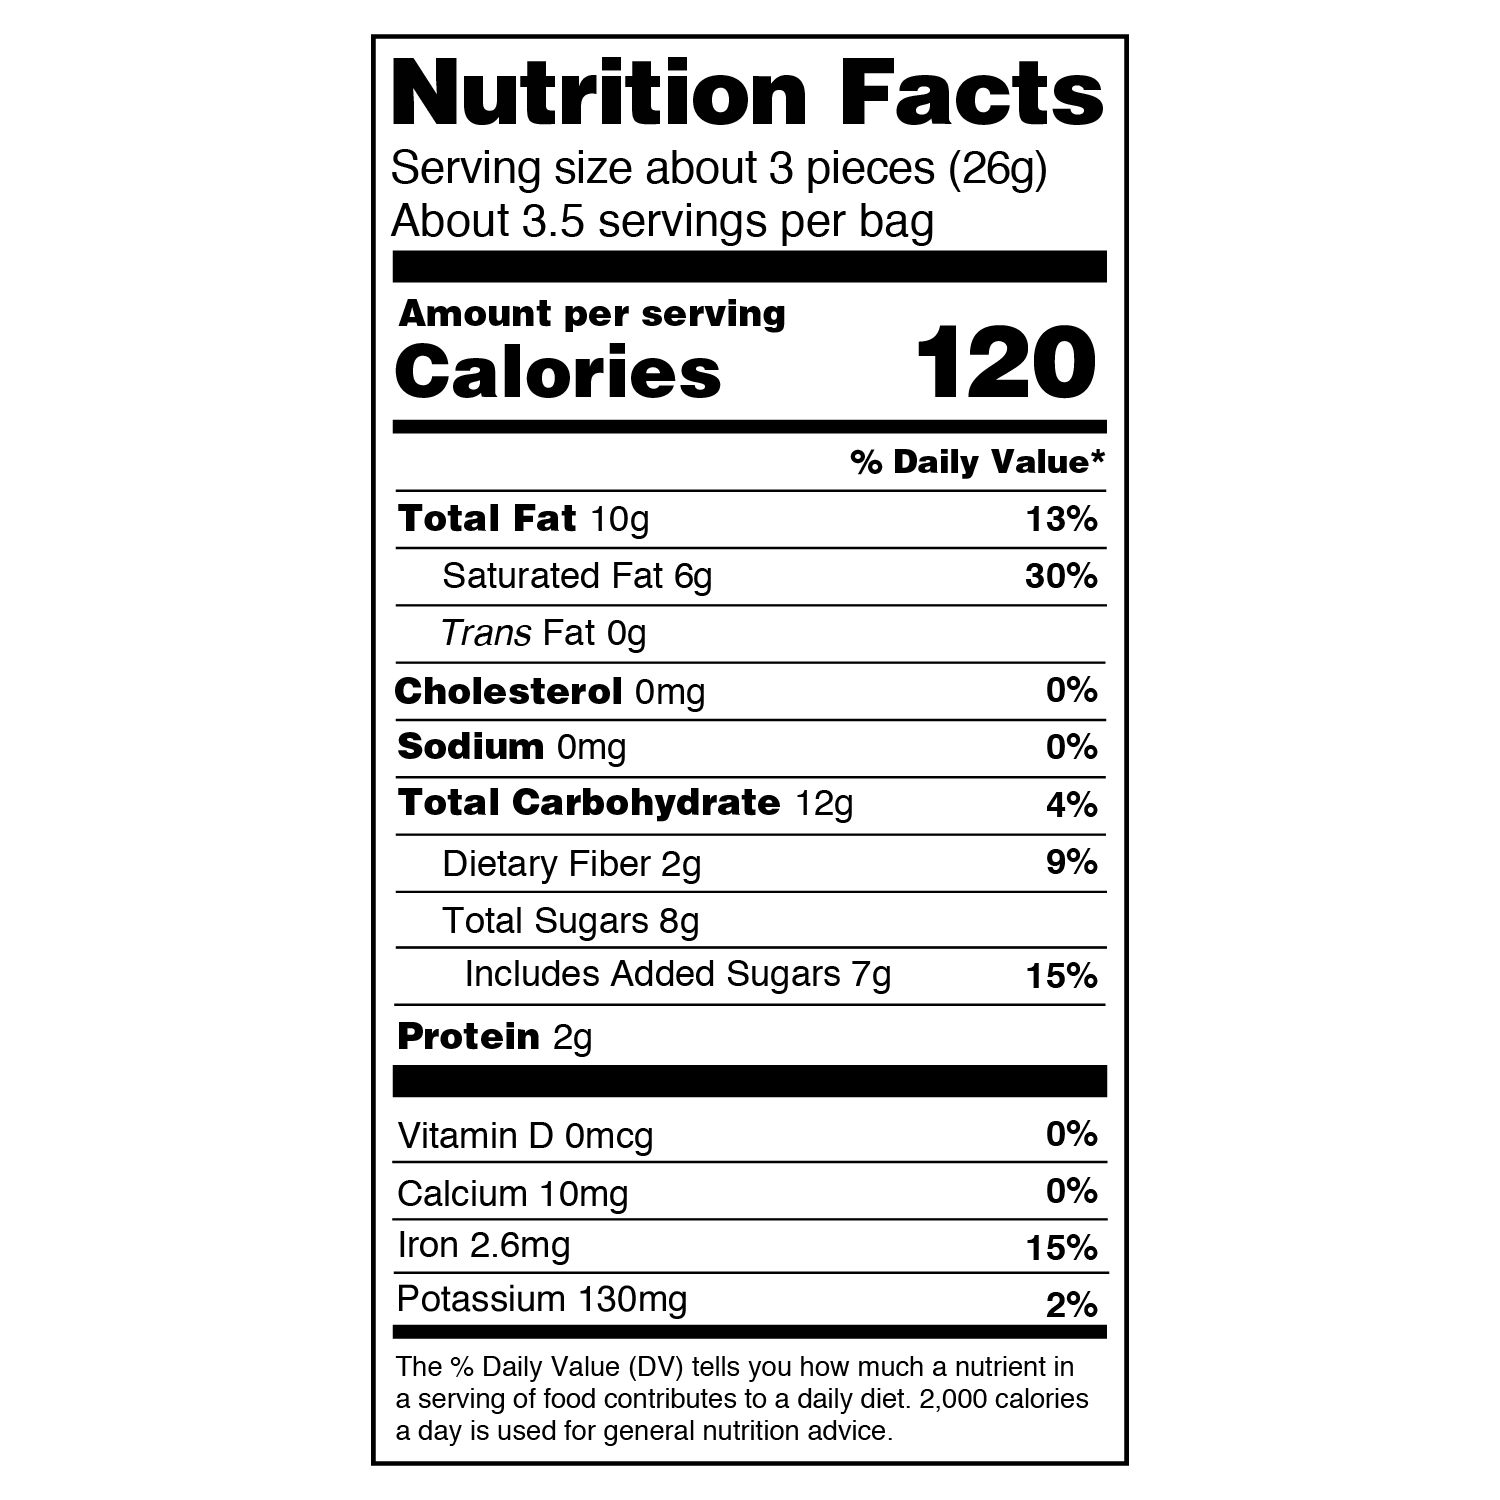 blueberry 18 oz nutritional information